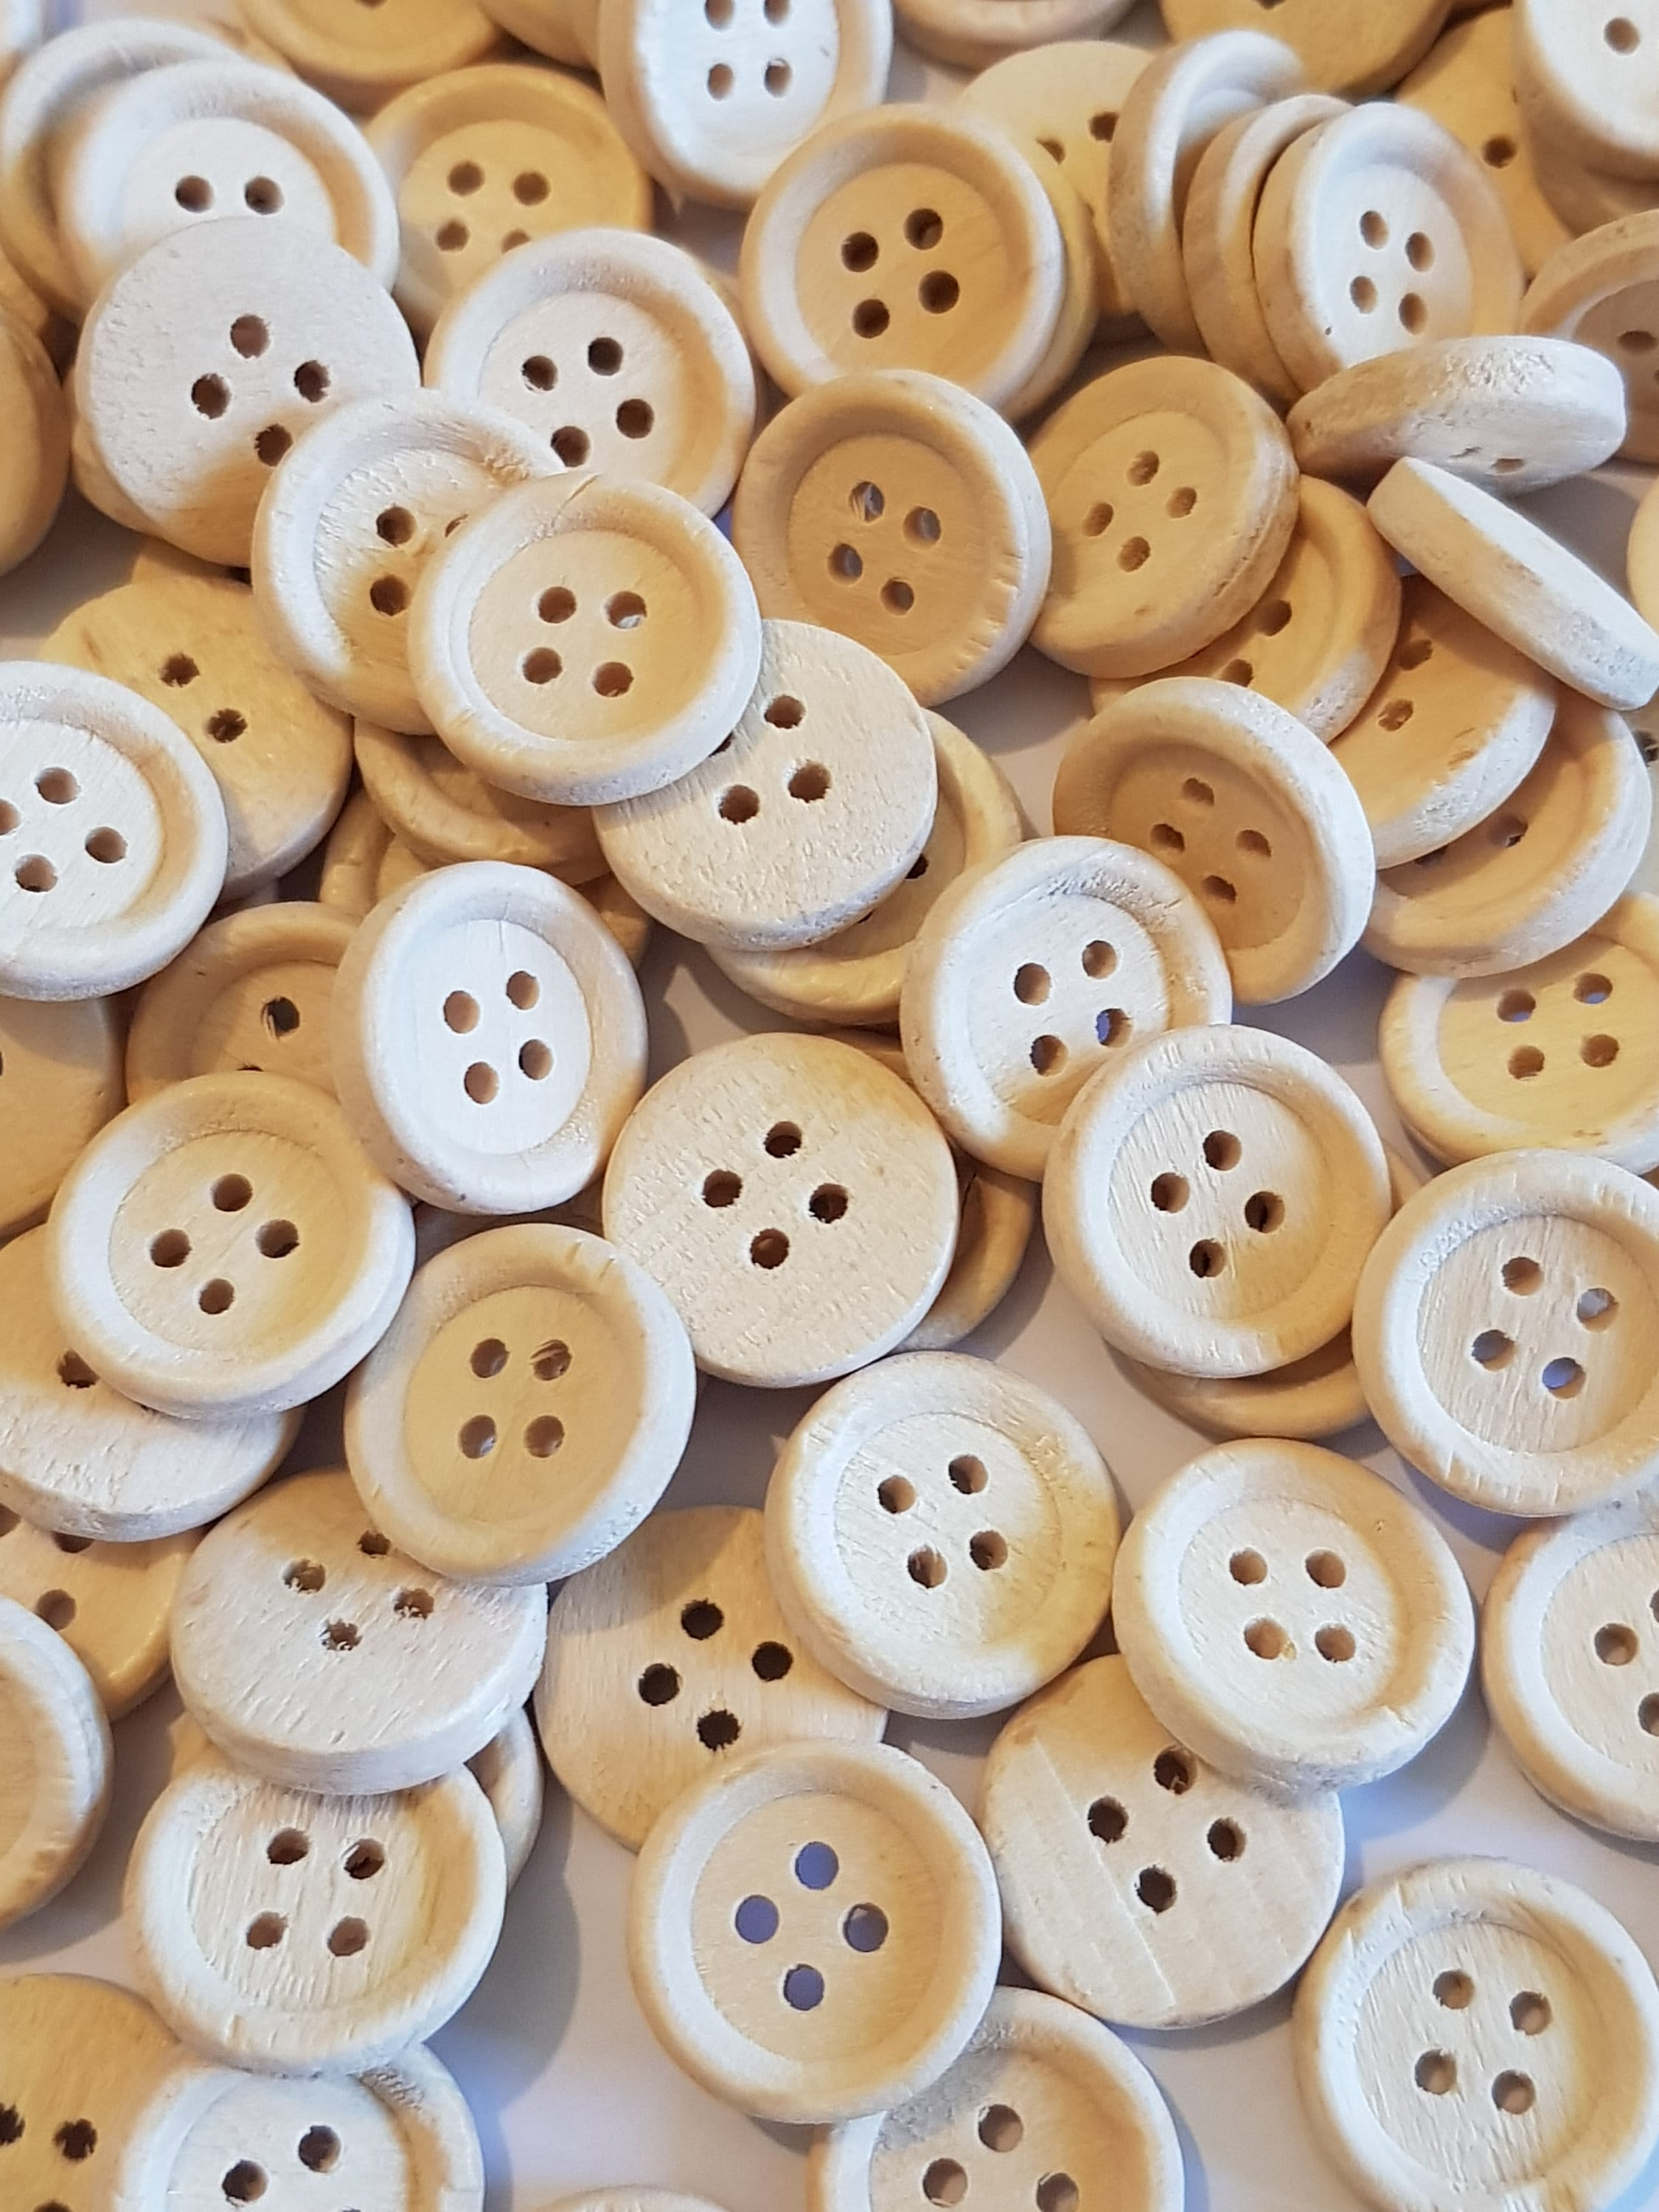 20pcs Vintage Wooden 4 Holes Round Wood Sewing Buttons Craft Scrapbooking 30mm